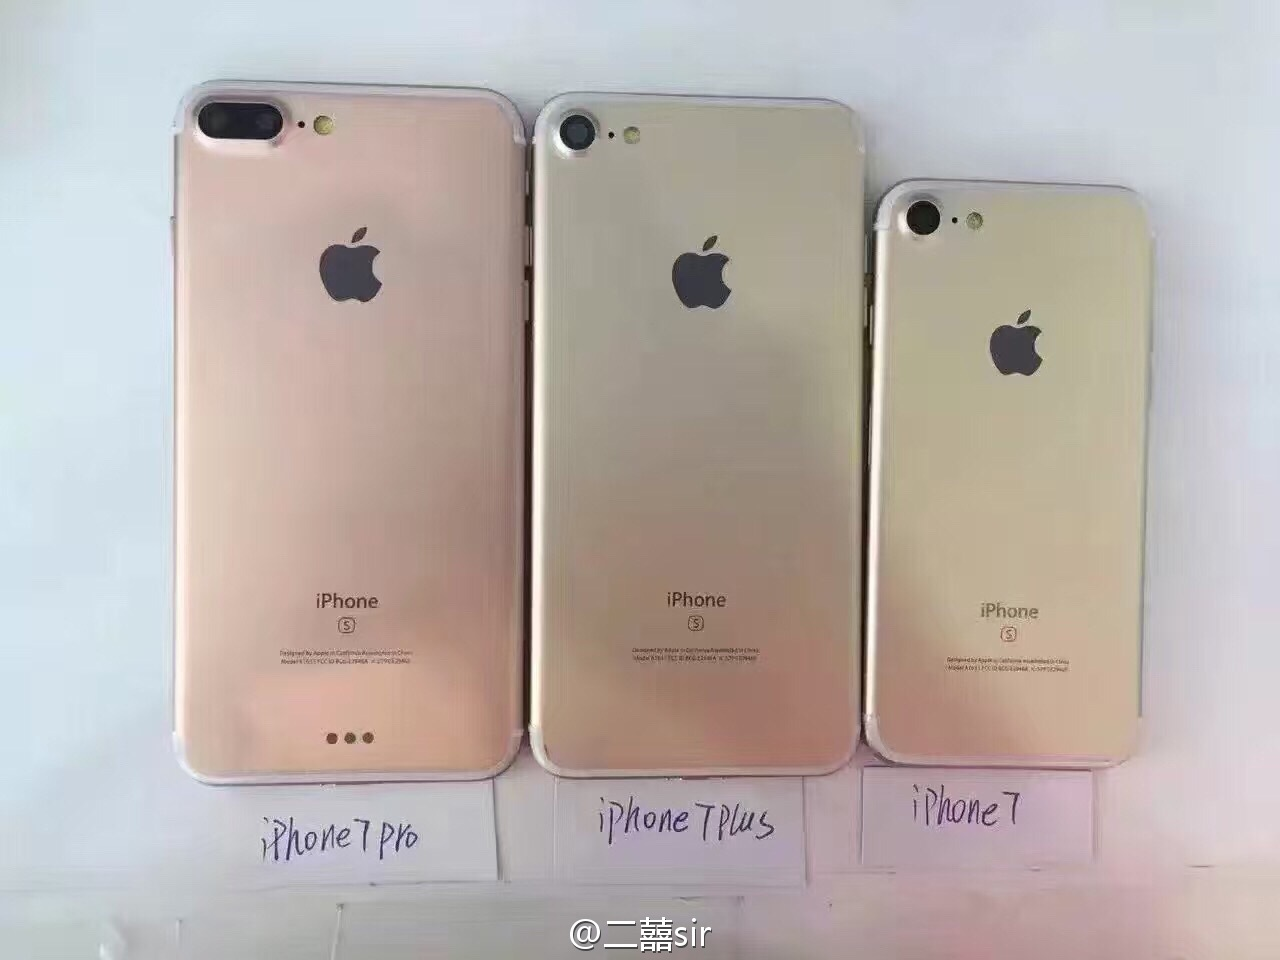 iphone-7-iphone-7-plus-iphone-7-pro-back